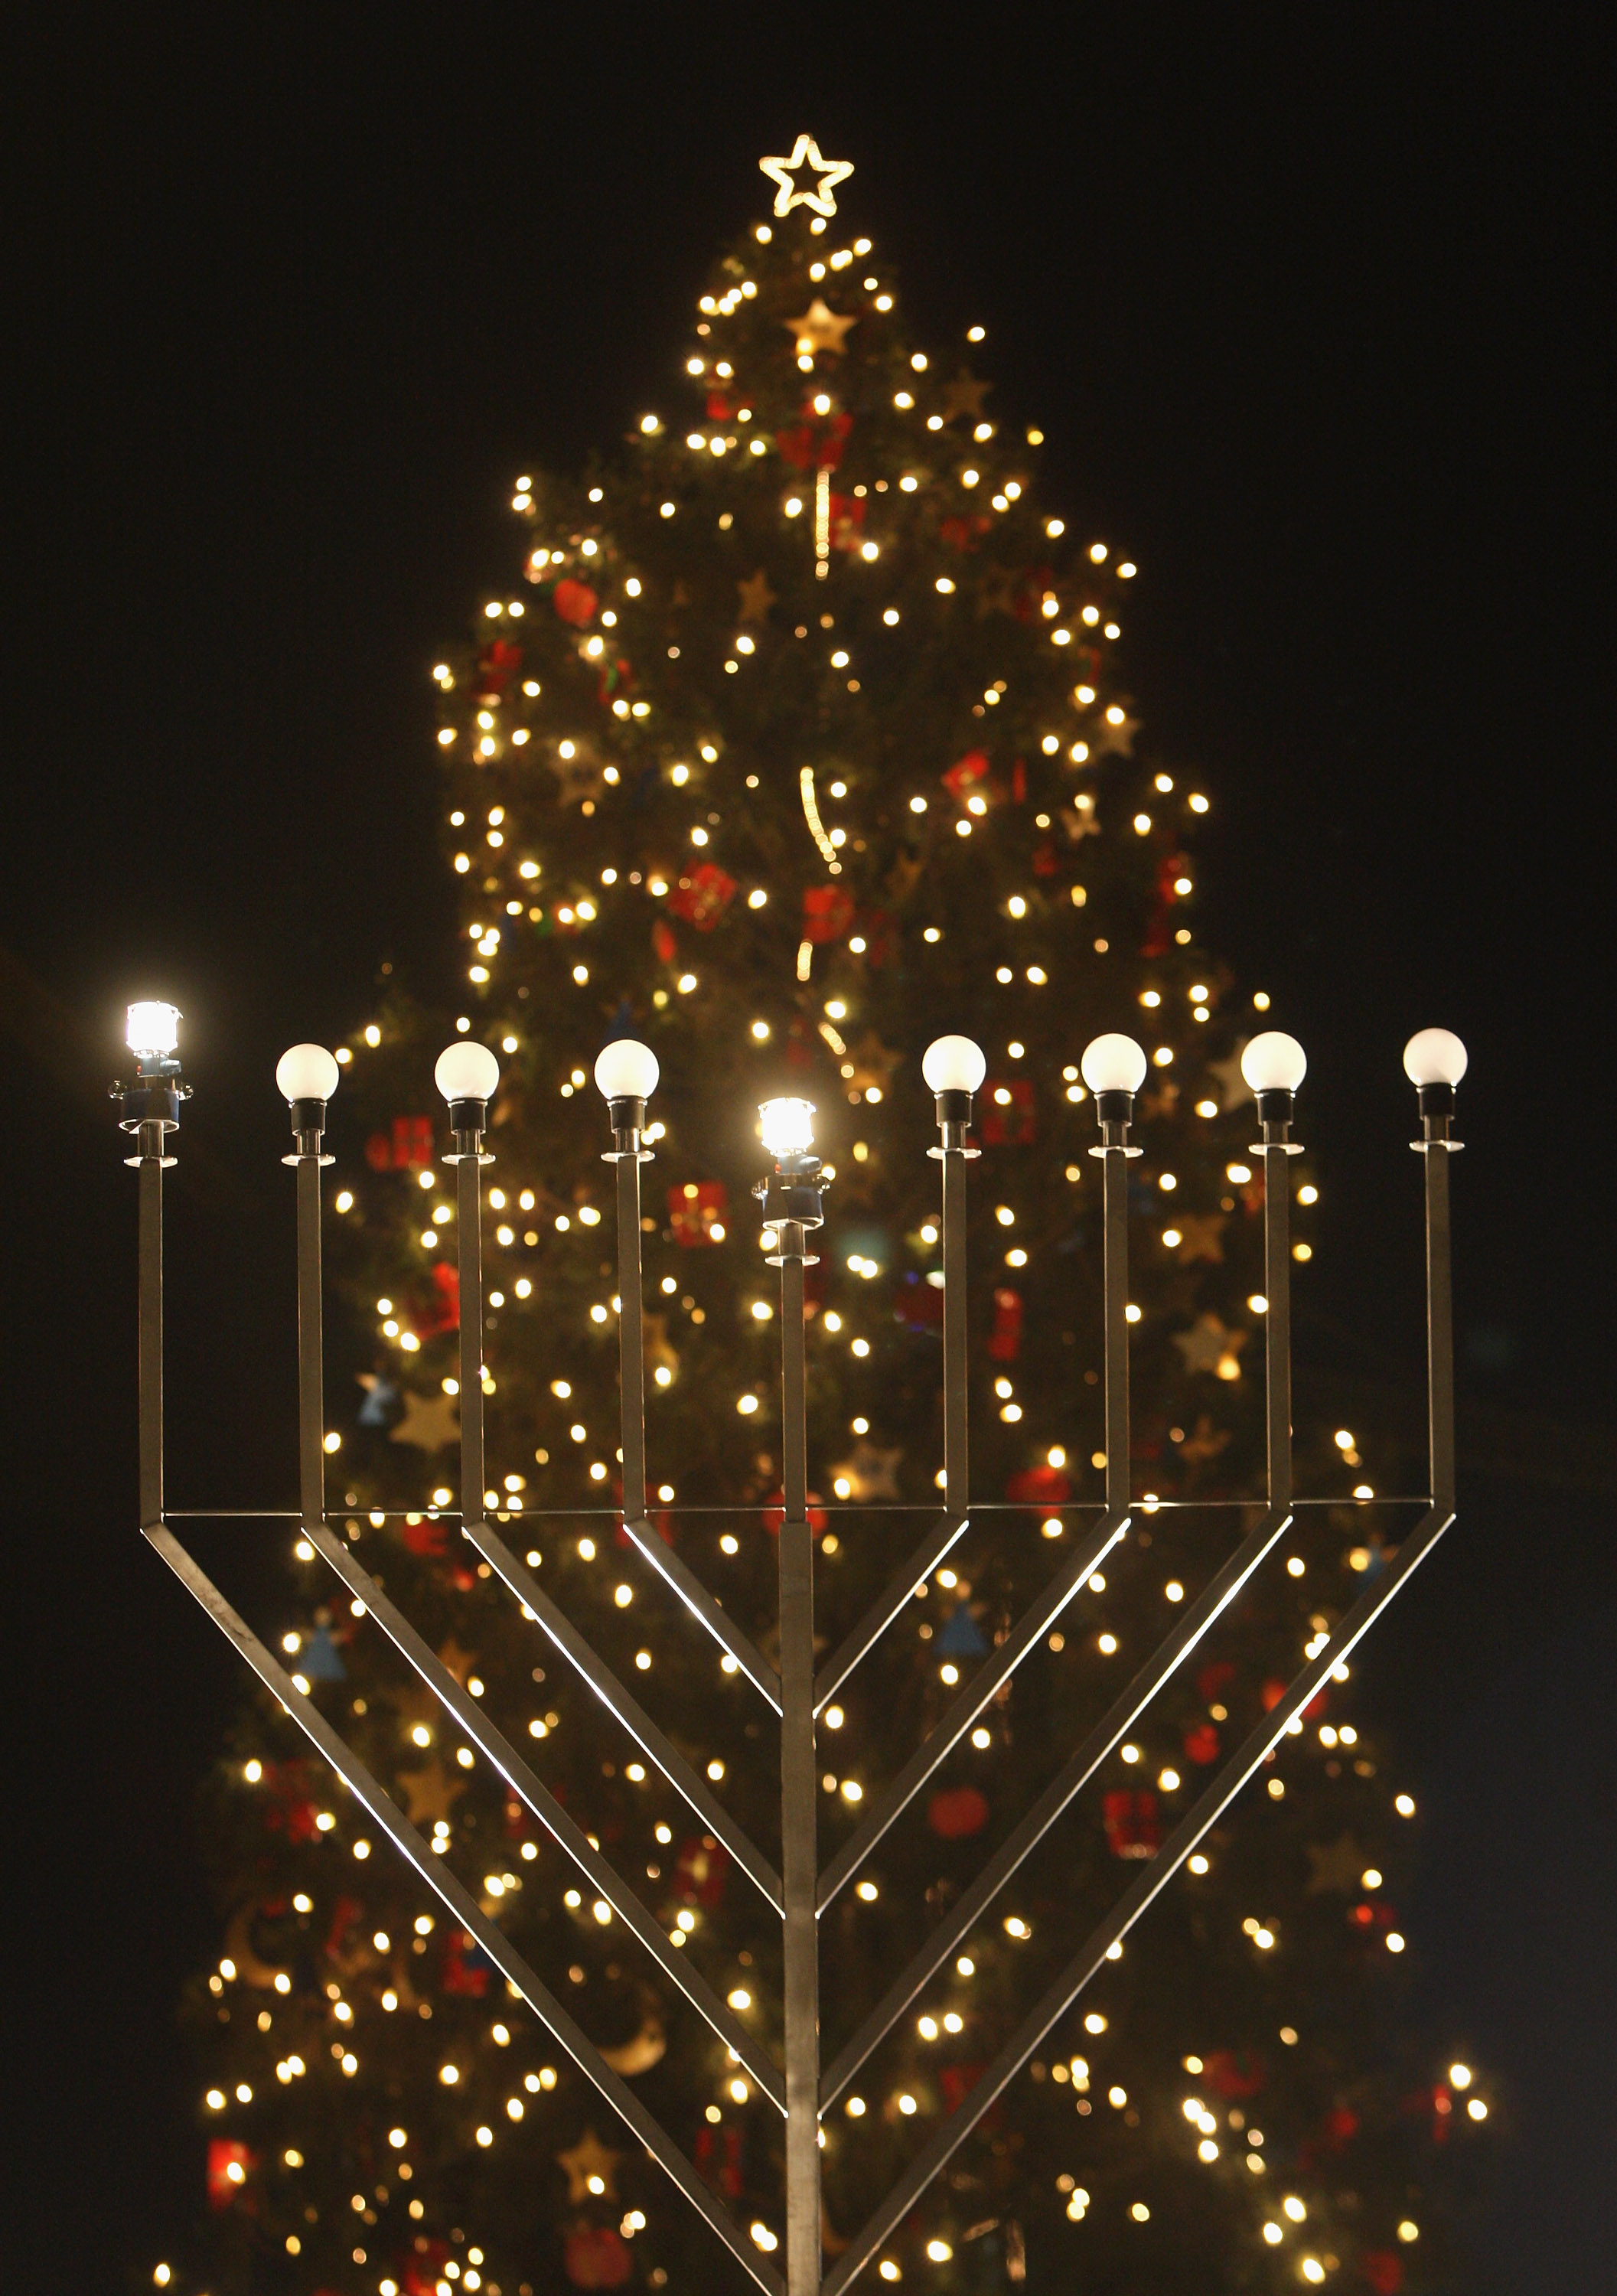 A giant, gas-lit menorah stands in front of a Christmas tree shortly after members of the local Jewish community lit the menorah on the night before the first day of Hannukah on Dec. 4, 2007 in Berlin, Germany.